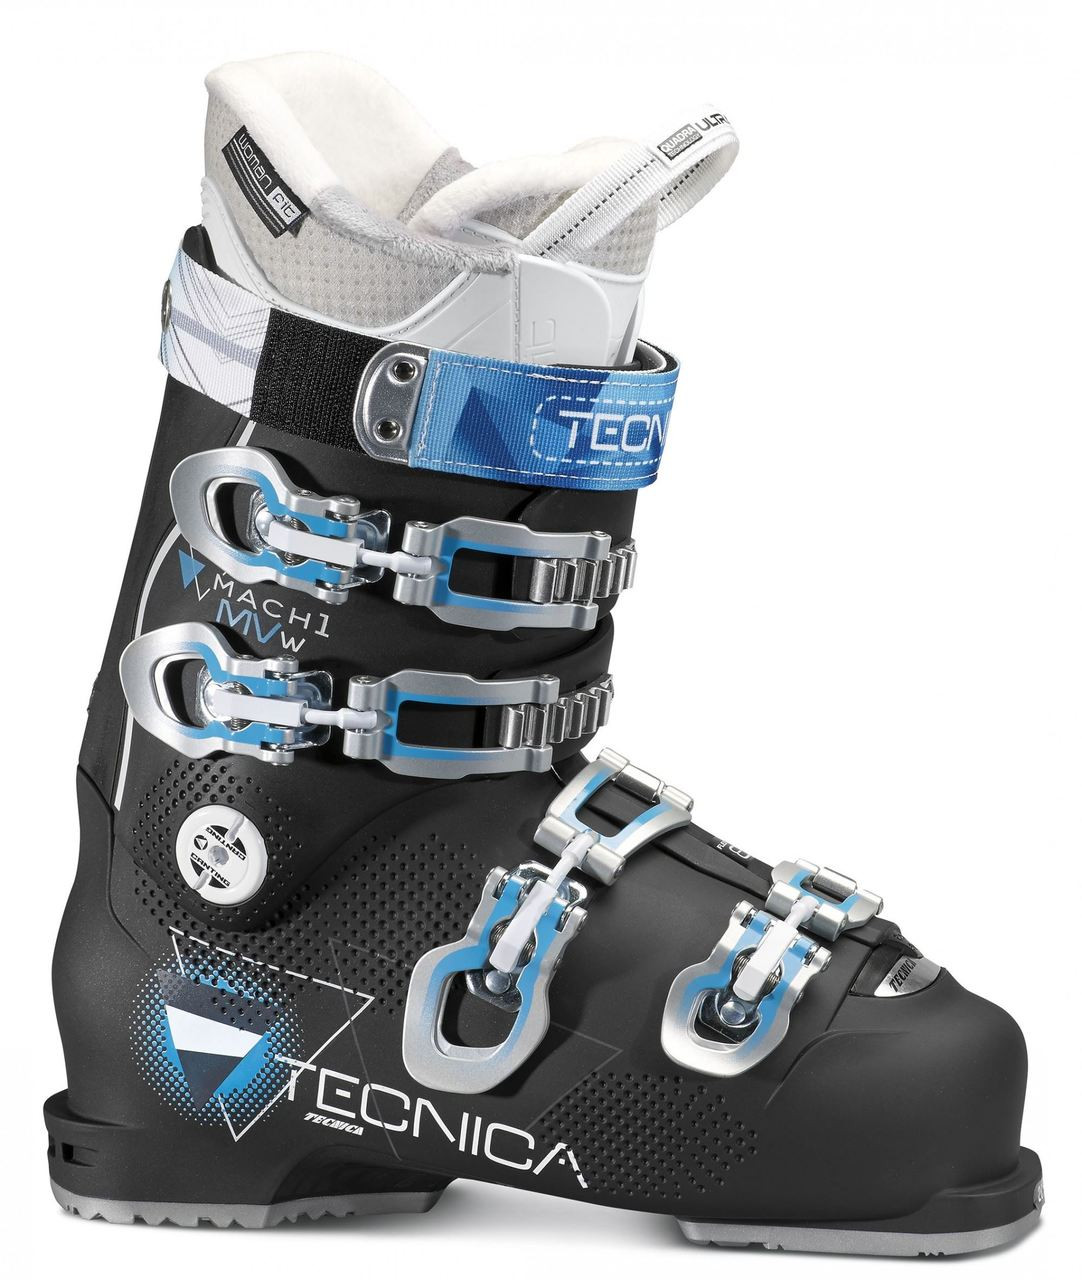 Tecnica Mach 1 85MV Womens Ski Boots 2017 - Gear West Ski and Run 0e0879543